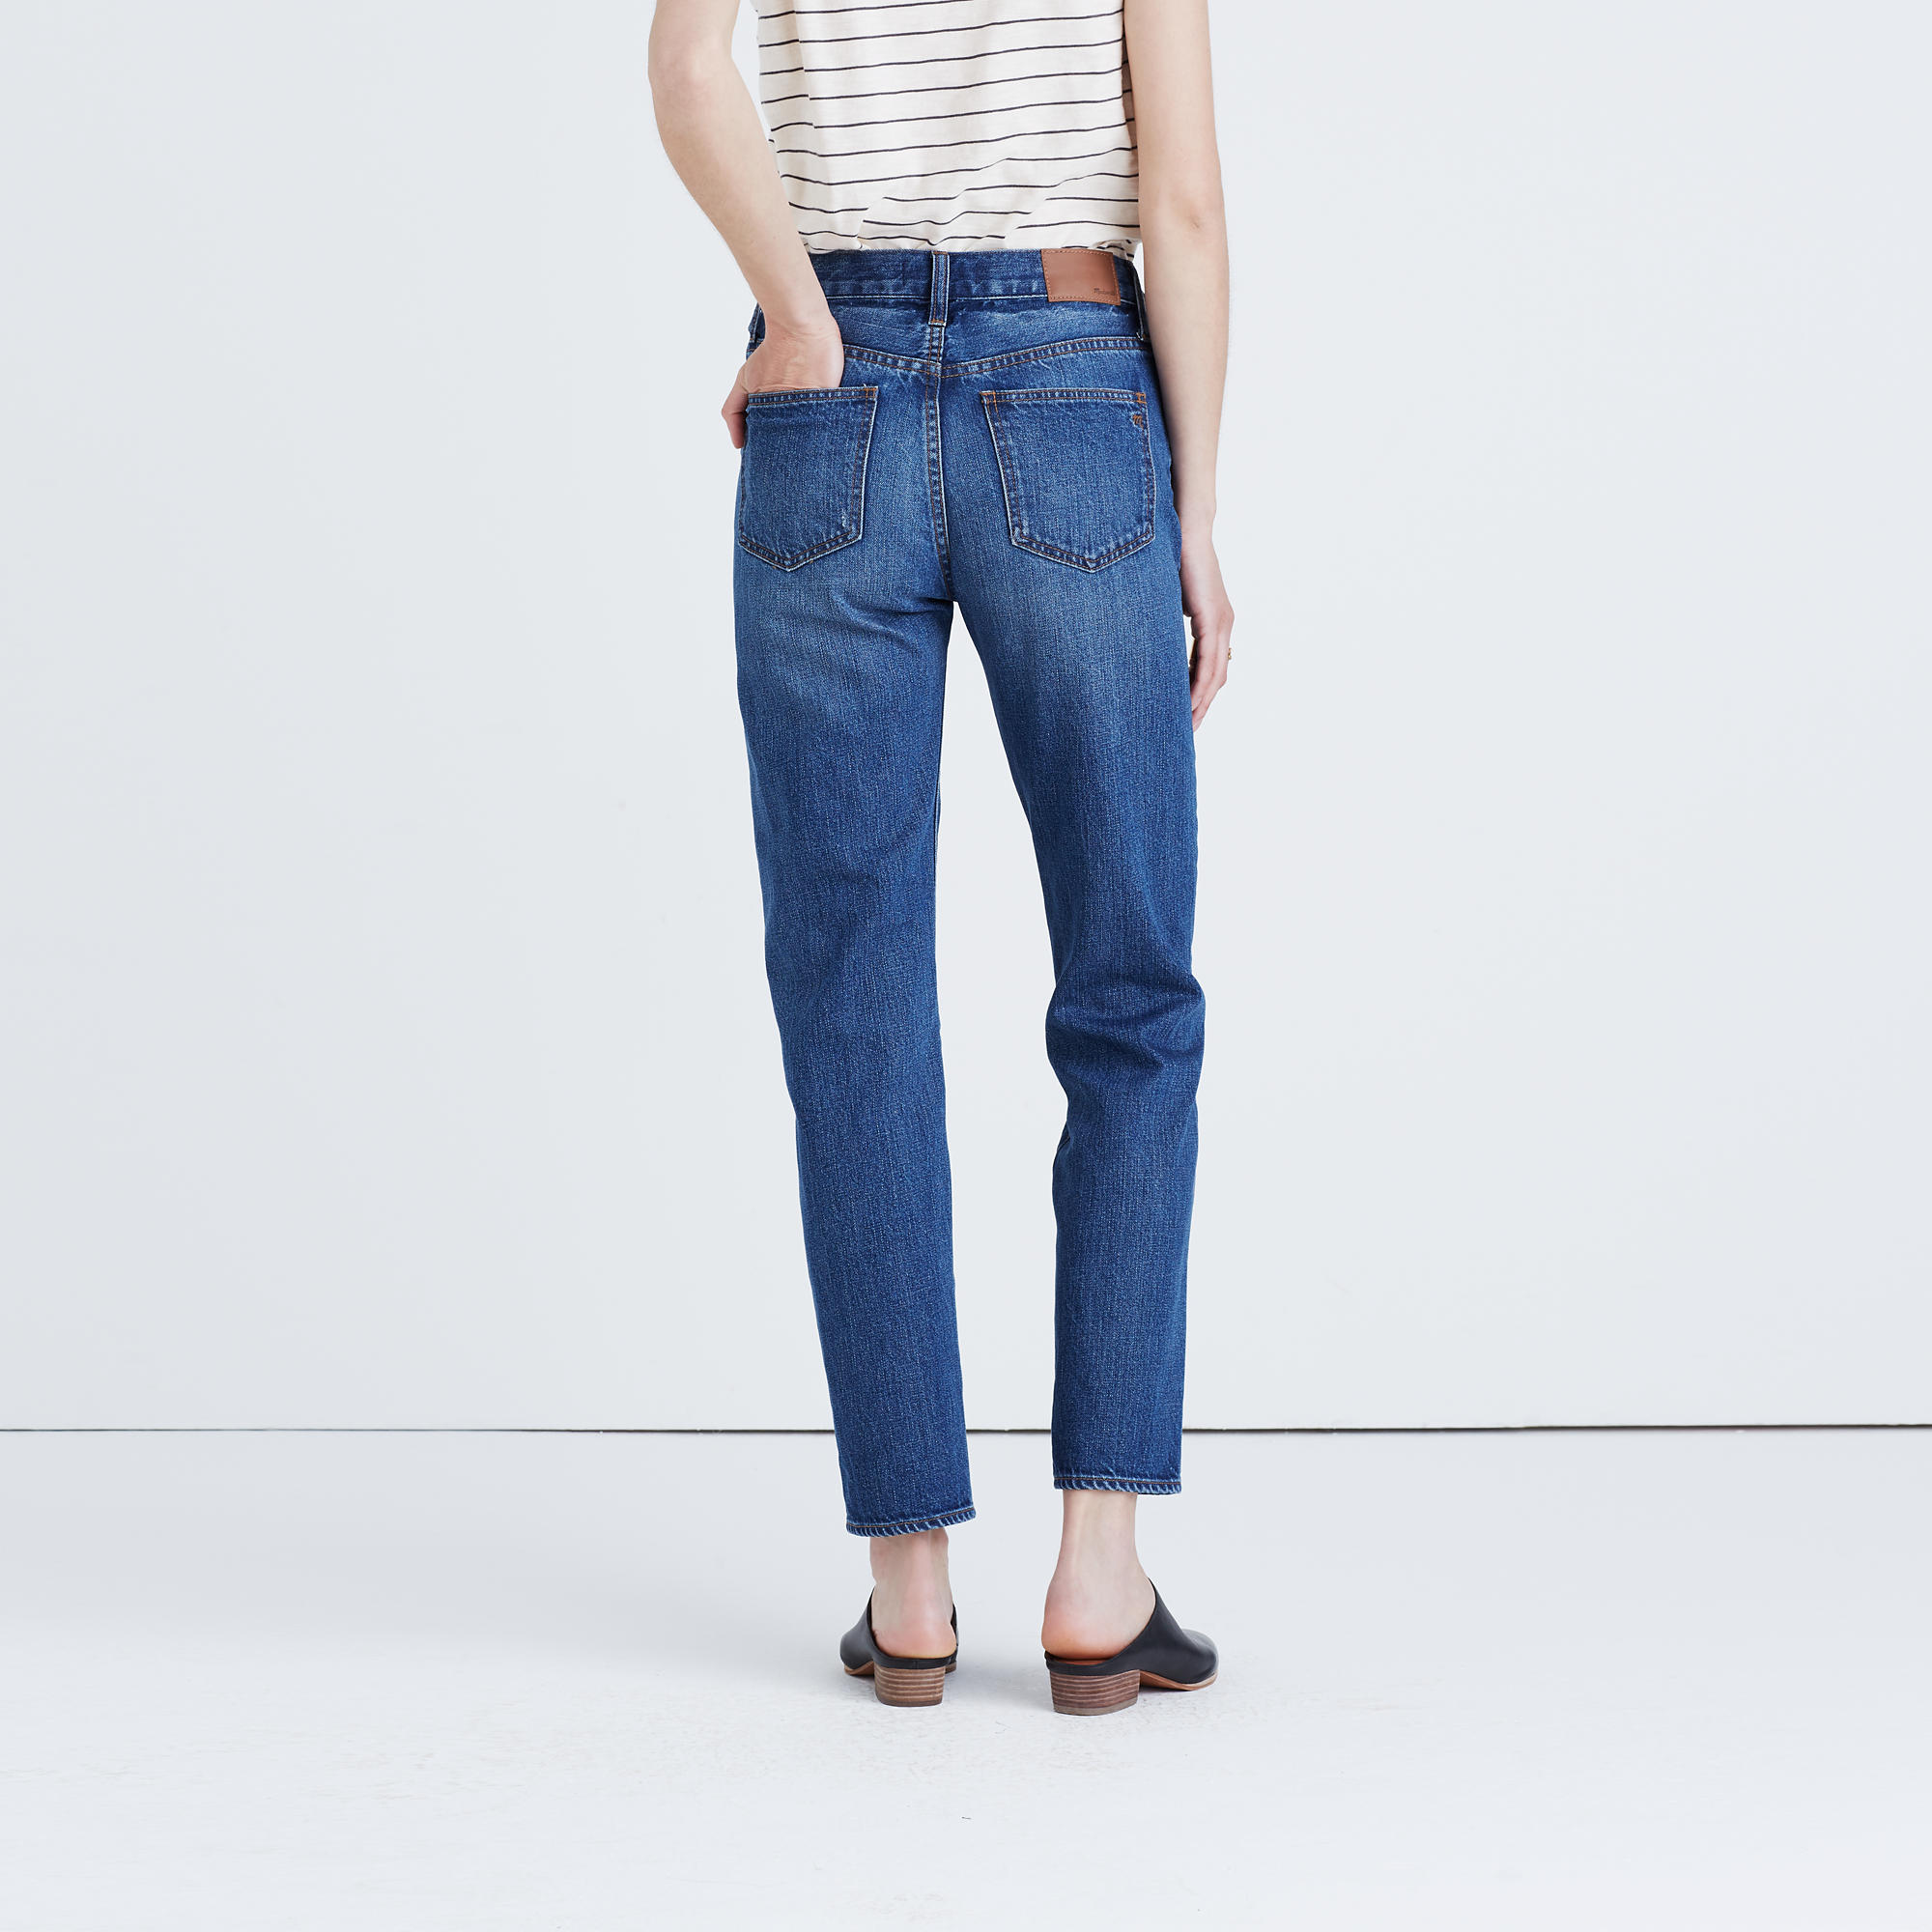 vintage jeans the perfect vintage jean : straight-leg u0026 perfect summer jeans | madewell qiuhlwr